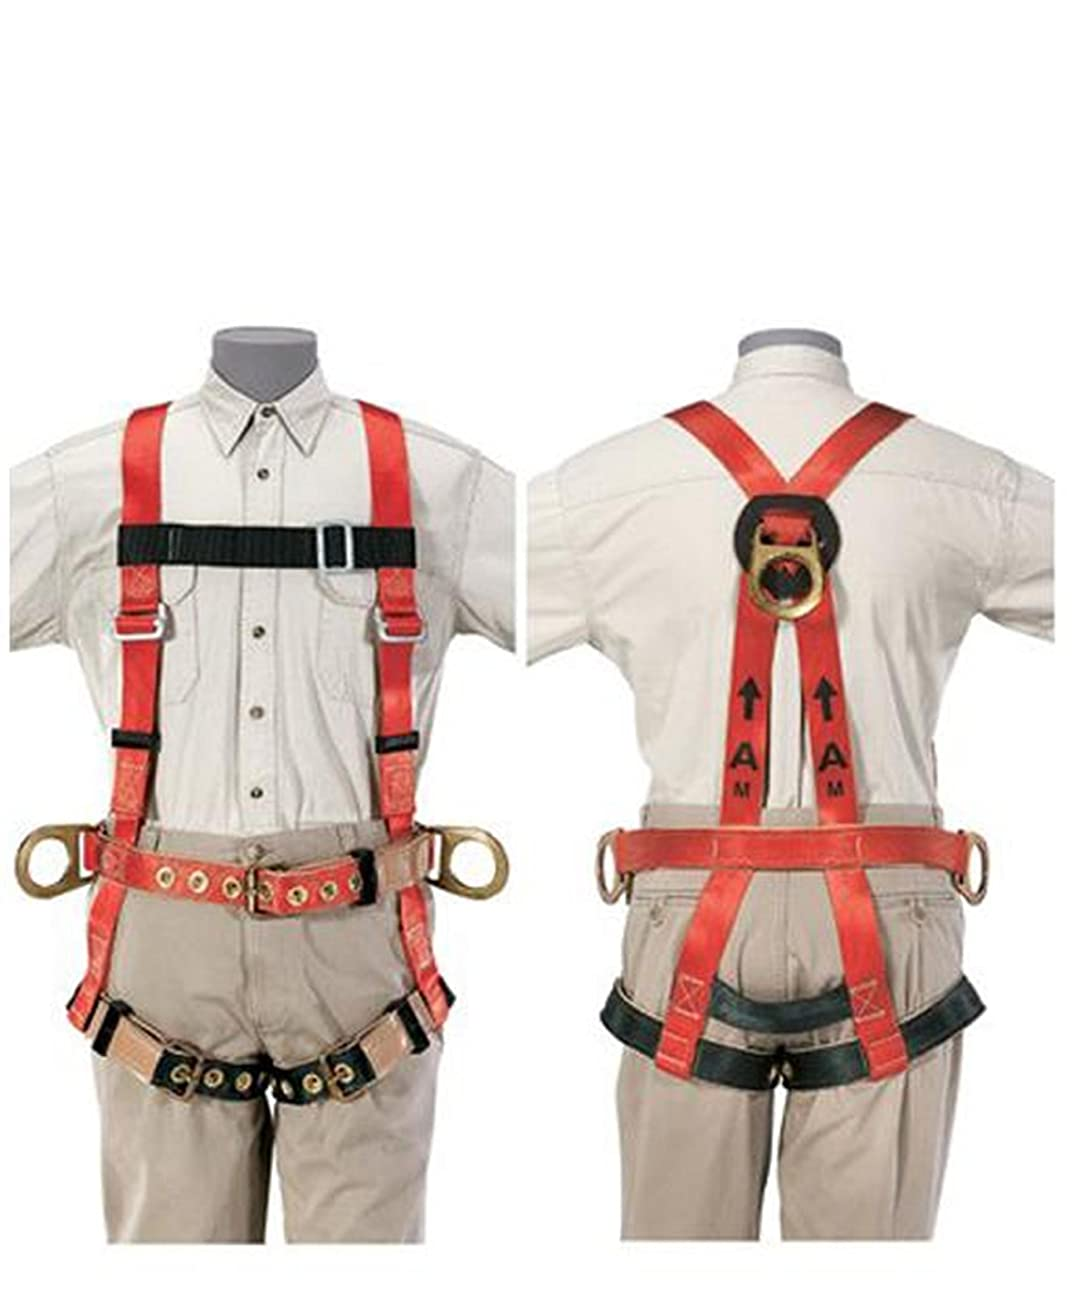 例廃棄するトーストKlein Tools 87092 Premium Fall-Arrest/Retrieval Harness for Tower Work, X-Large by Klein [並行輸入品]